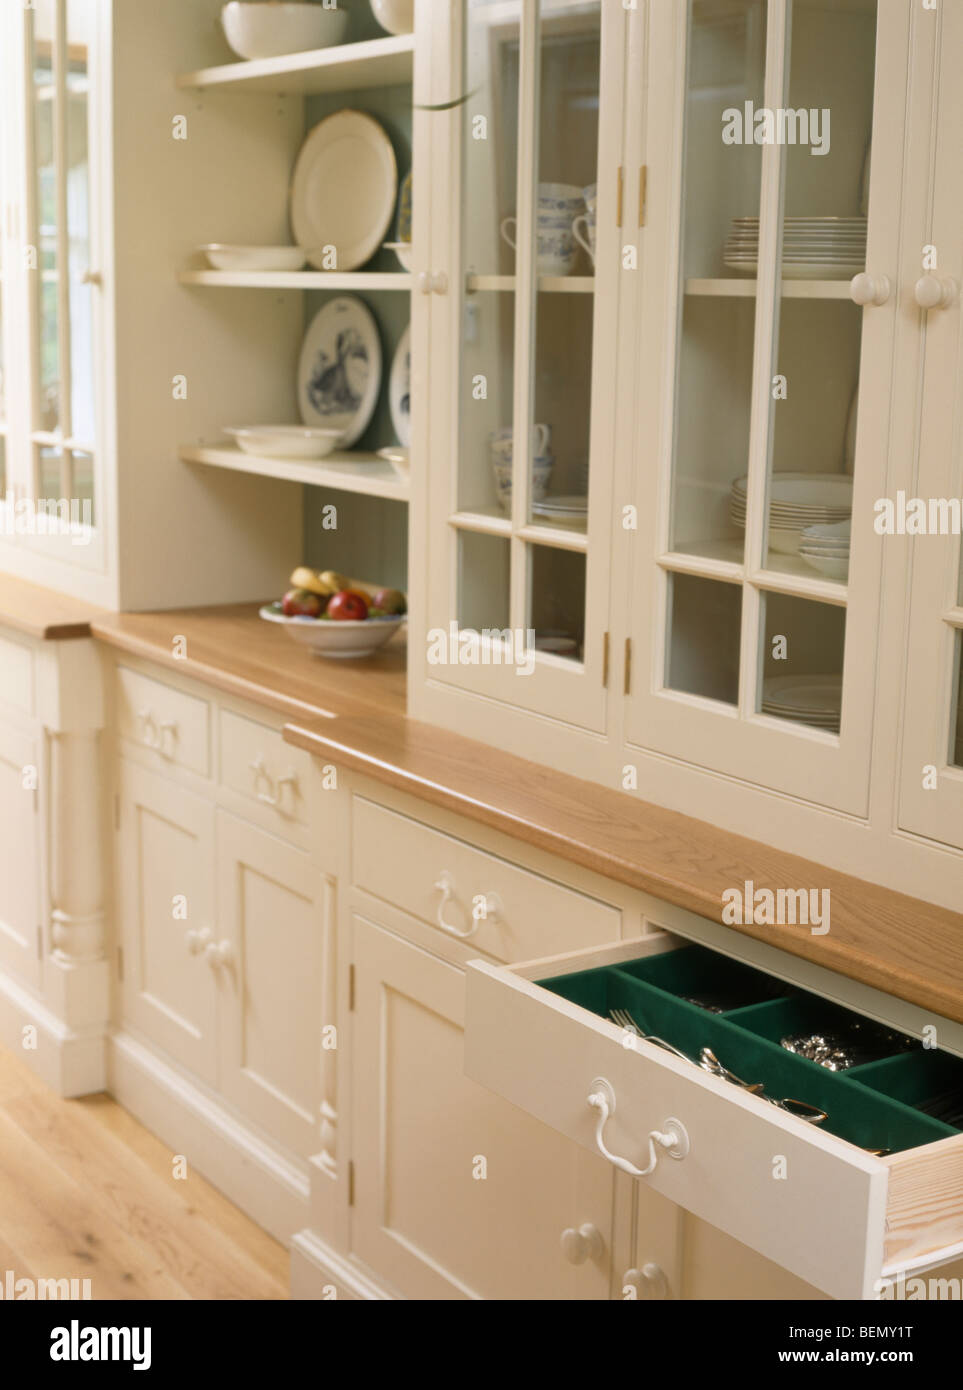 Close Up Of Cream Fitted Kitchen Cupboards With Glazed Doors Stock Photo Alamy